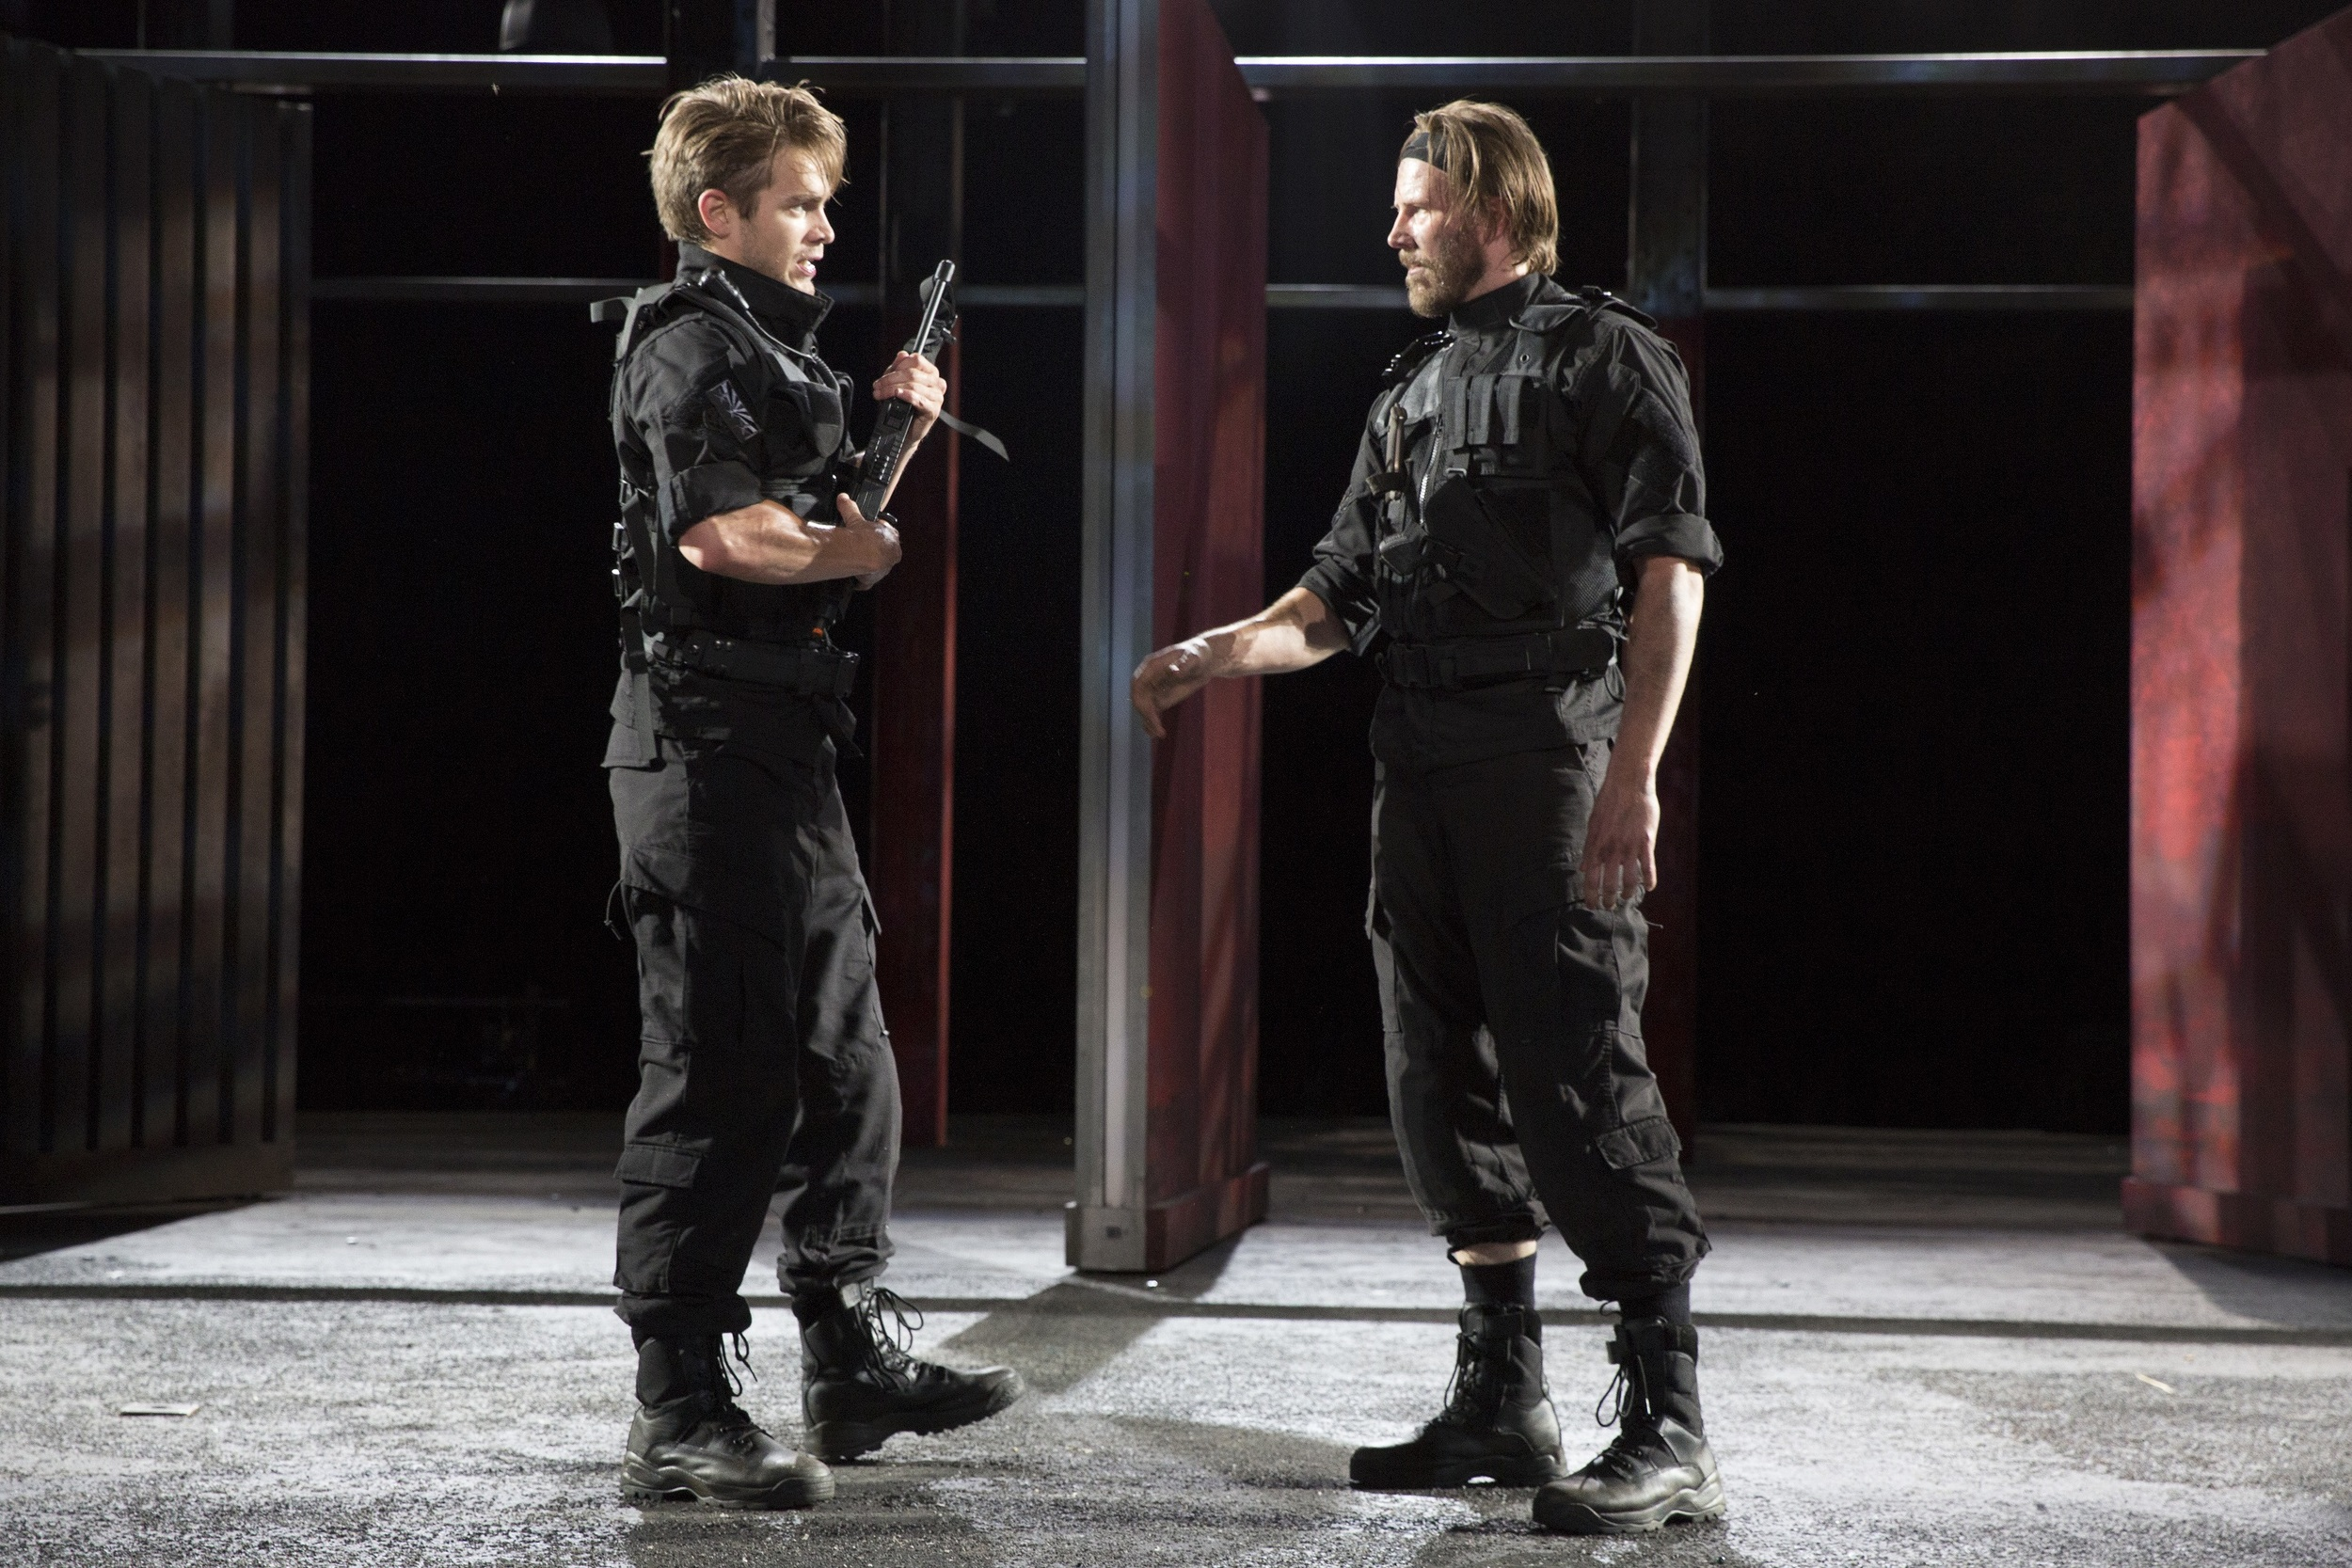 Brothers-in-arms: Troilus (Andrew Burnap), Hector (Bill Heck)